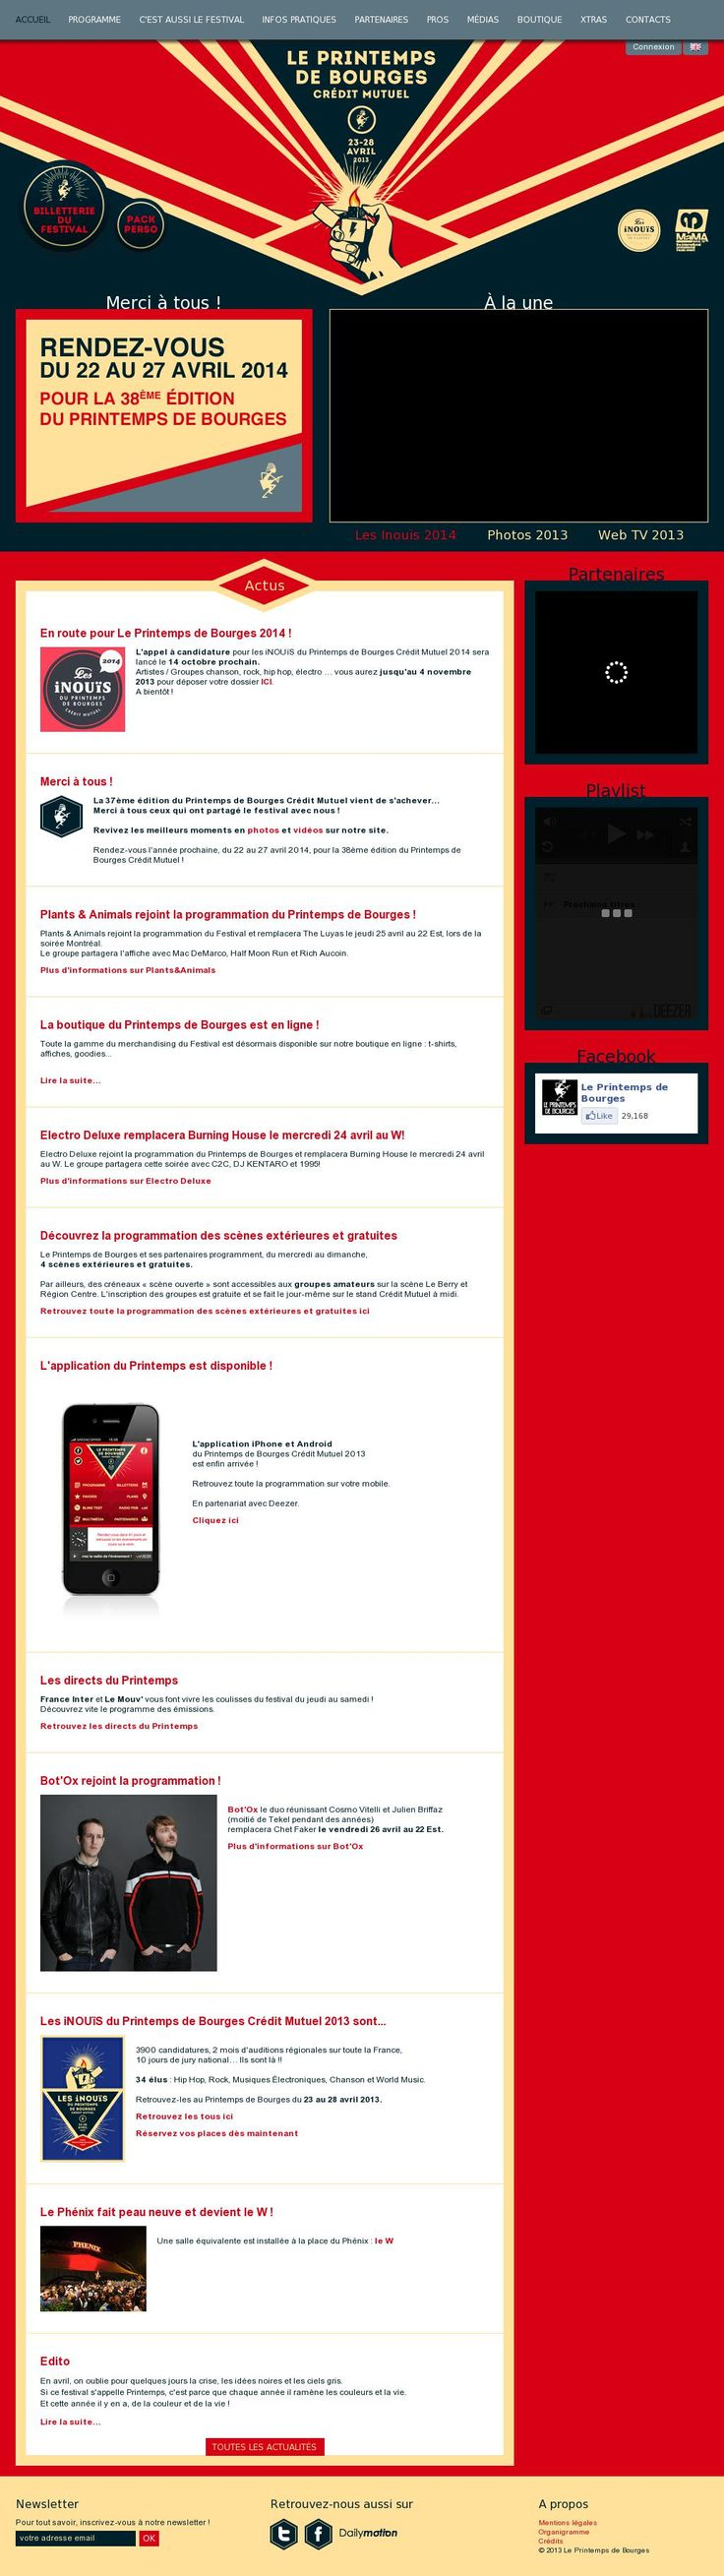 The website 'http://www.printemps-bourges.com/fr/accueil/bienvenue.php' courtesy of @Pinstamatic (http://pinstamatic.com)